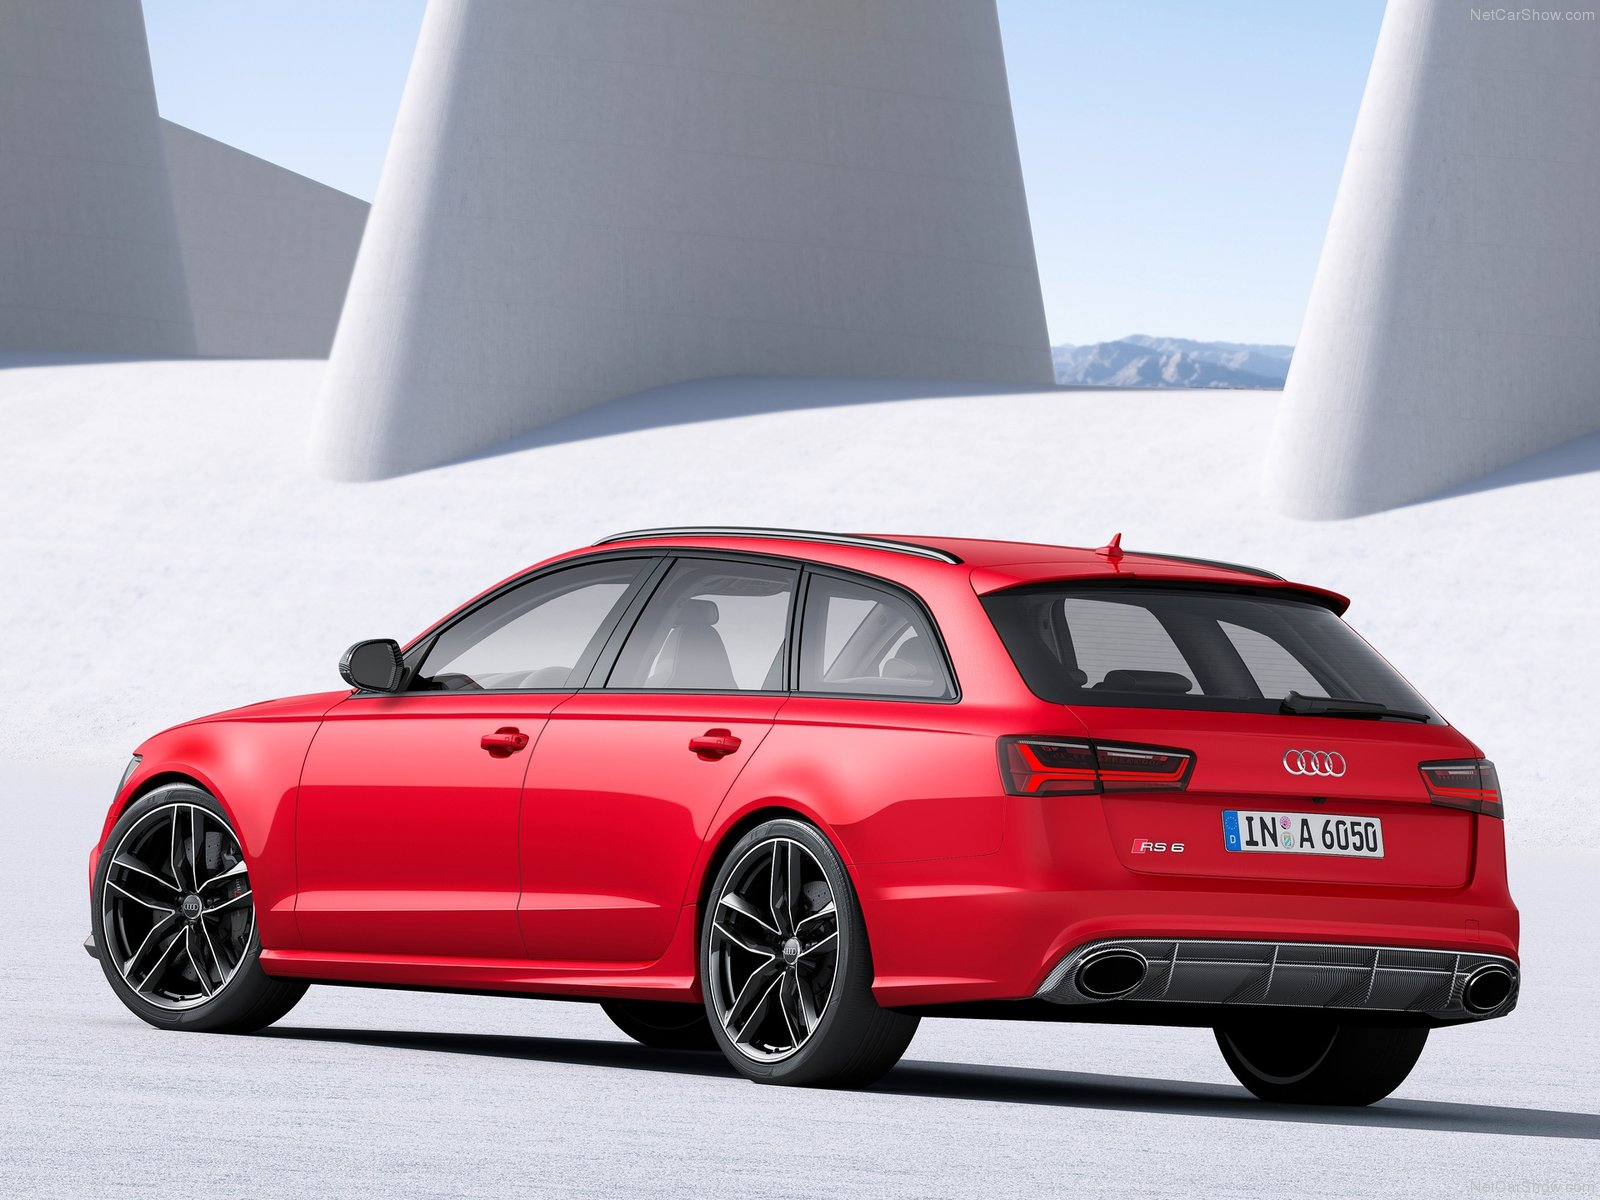 Audi RS6 Avant picture # 128656 | Audi photo gallery | CarsBase.com